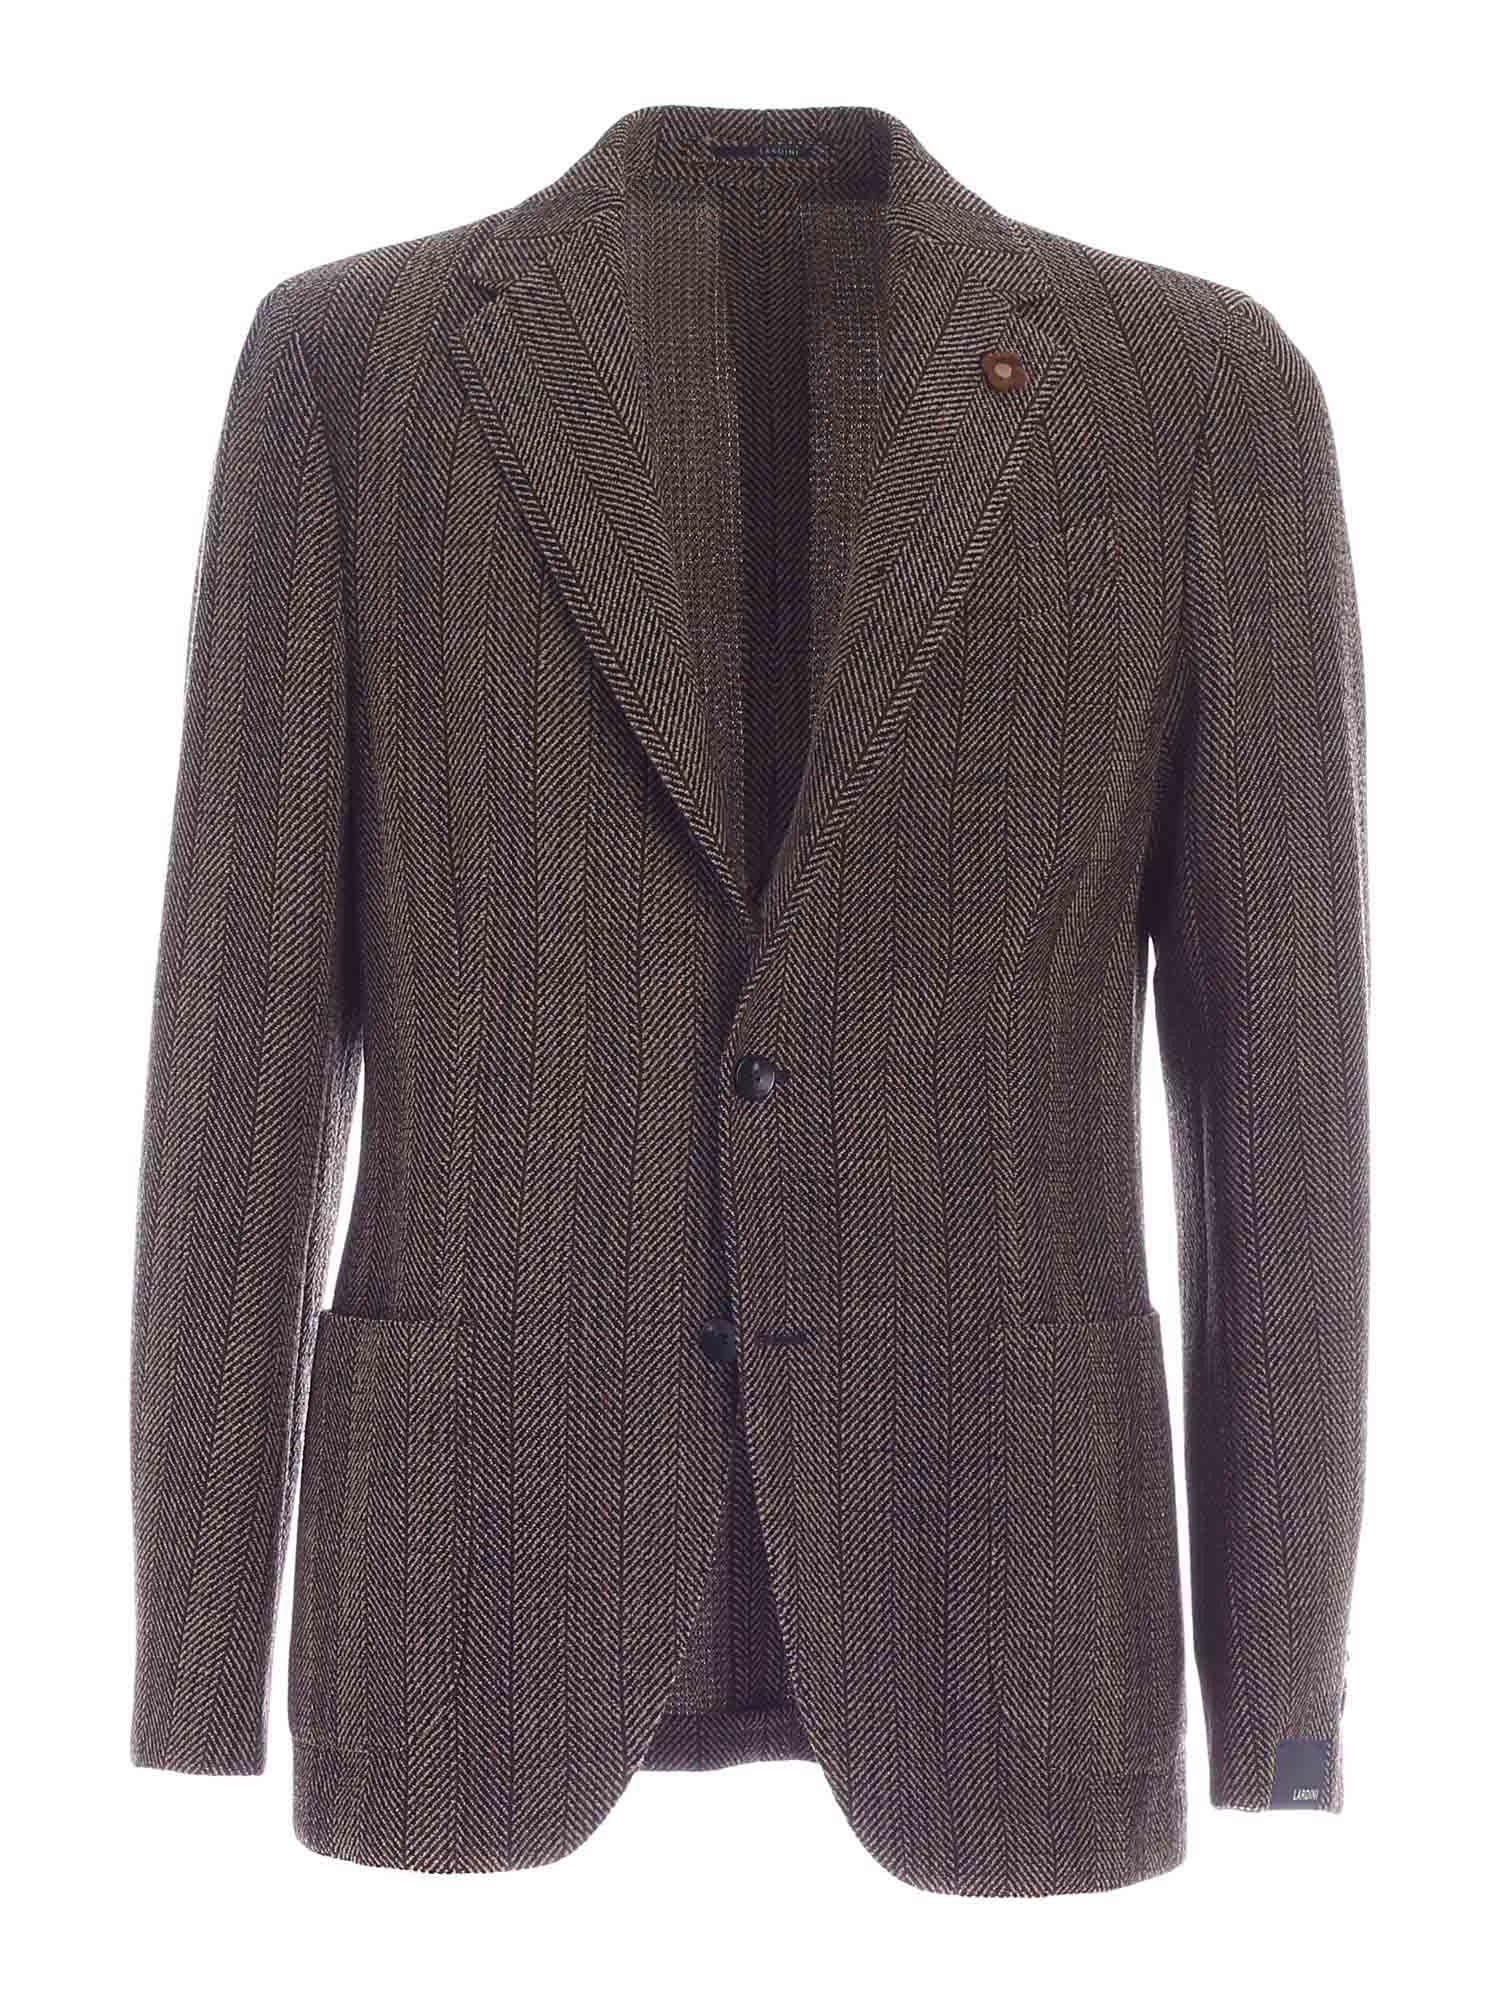 Lardini SINGLE-BREASTED JACKET IN MELANGE BROWN